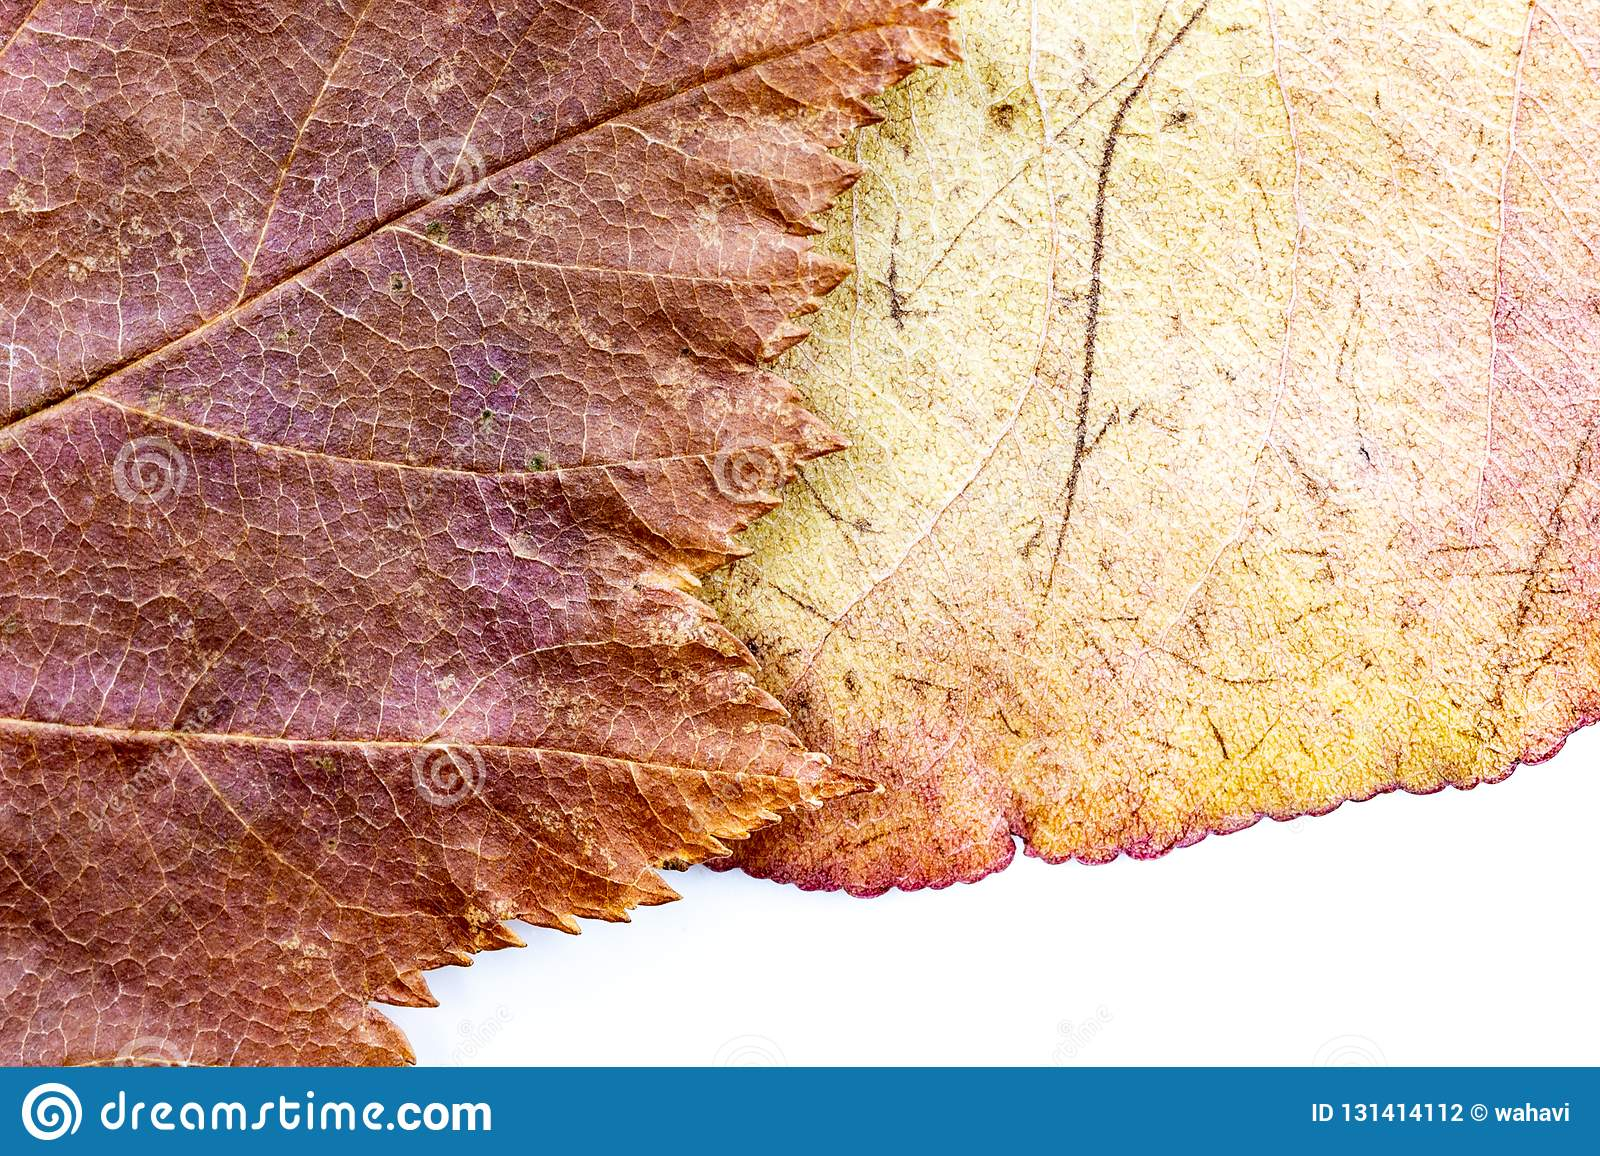 Autumn leaves background composition - fawn chequers and purple-yellow pear